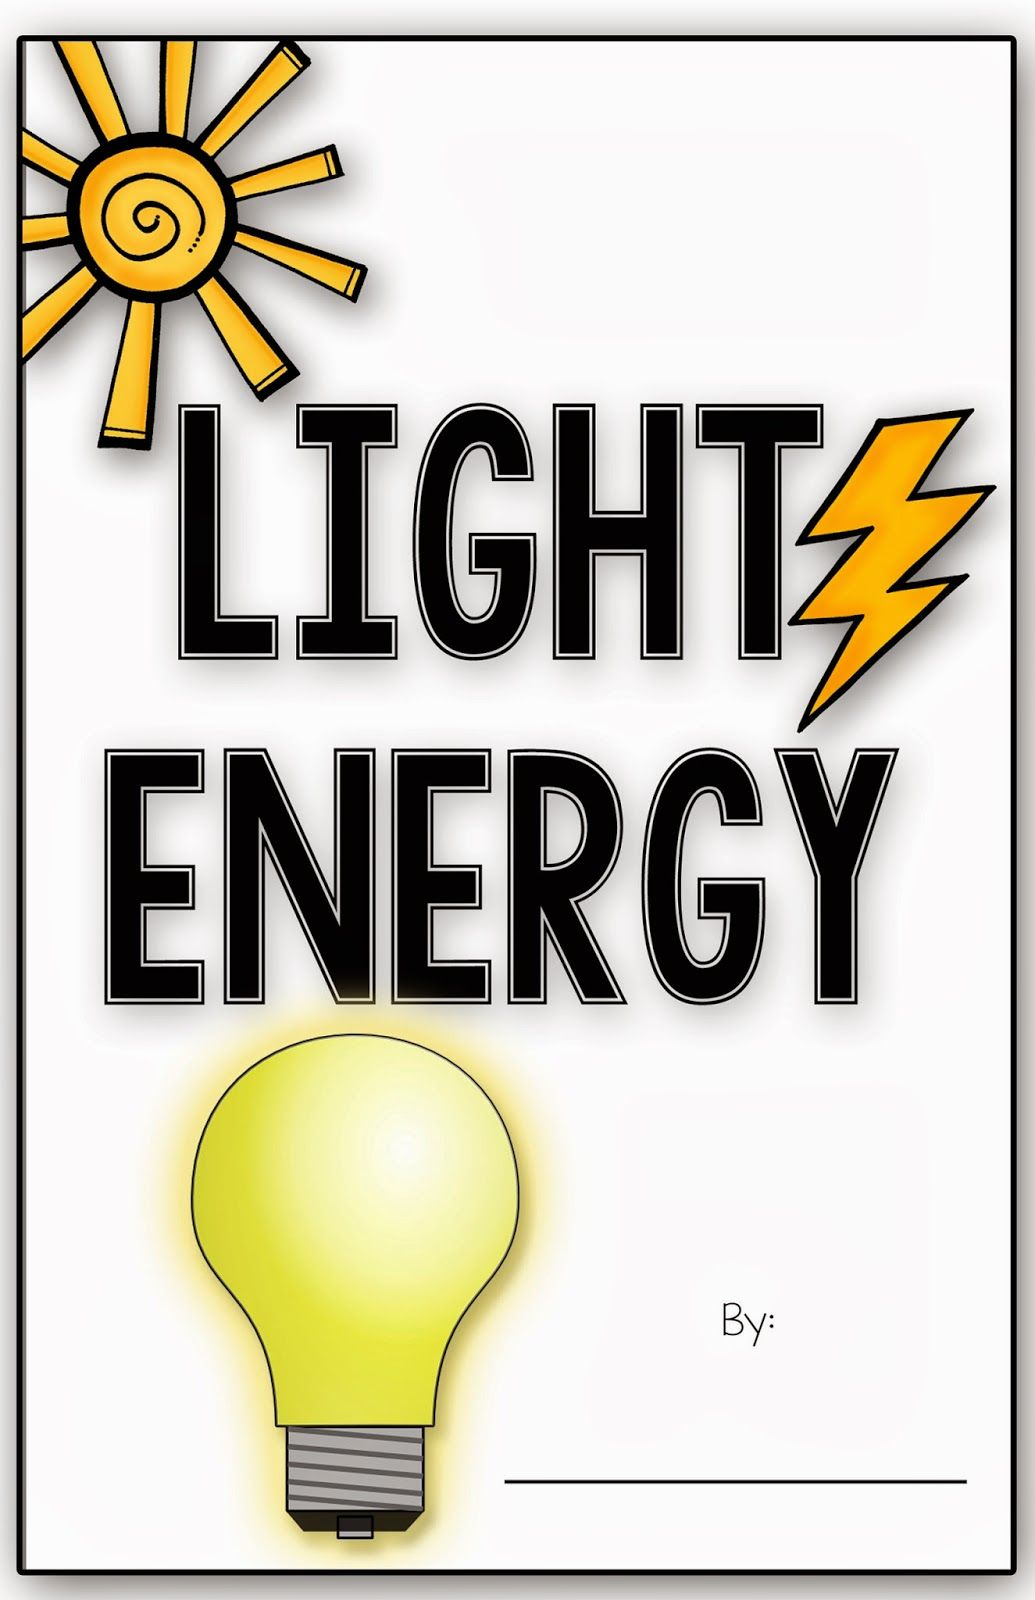 Workbooks solar energy worksheets for kids : Forms of Energy & a FREEBIE!!! | Lights, Books and School